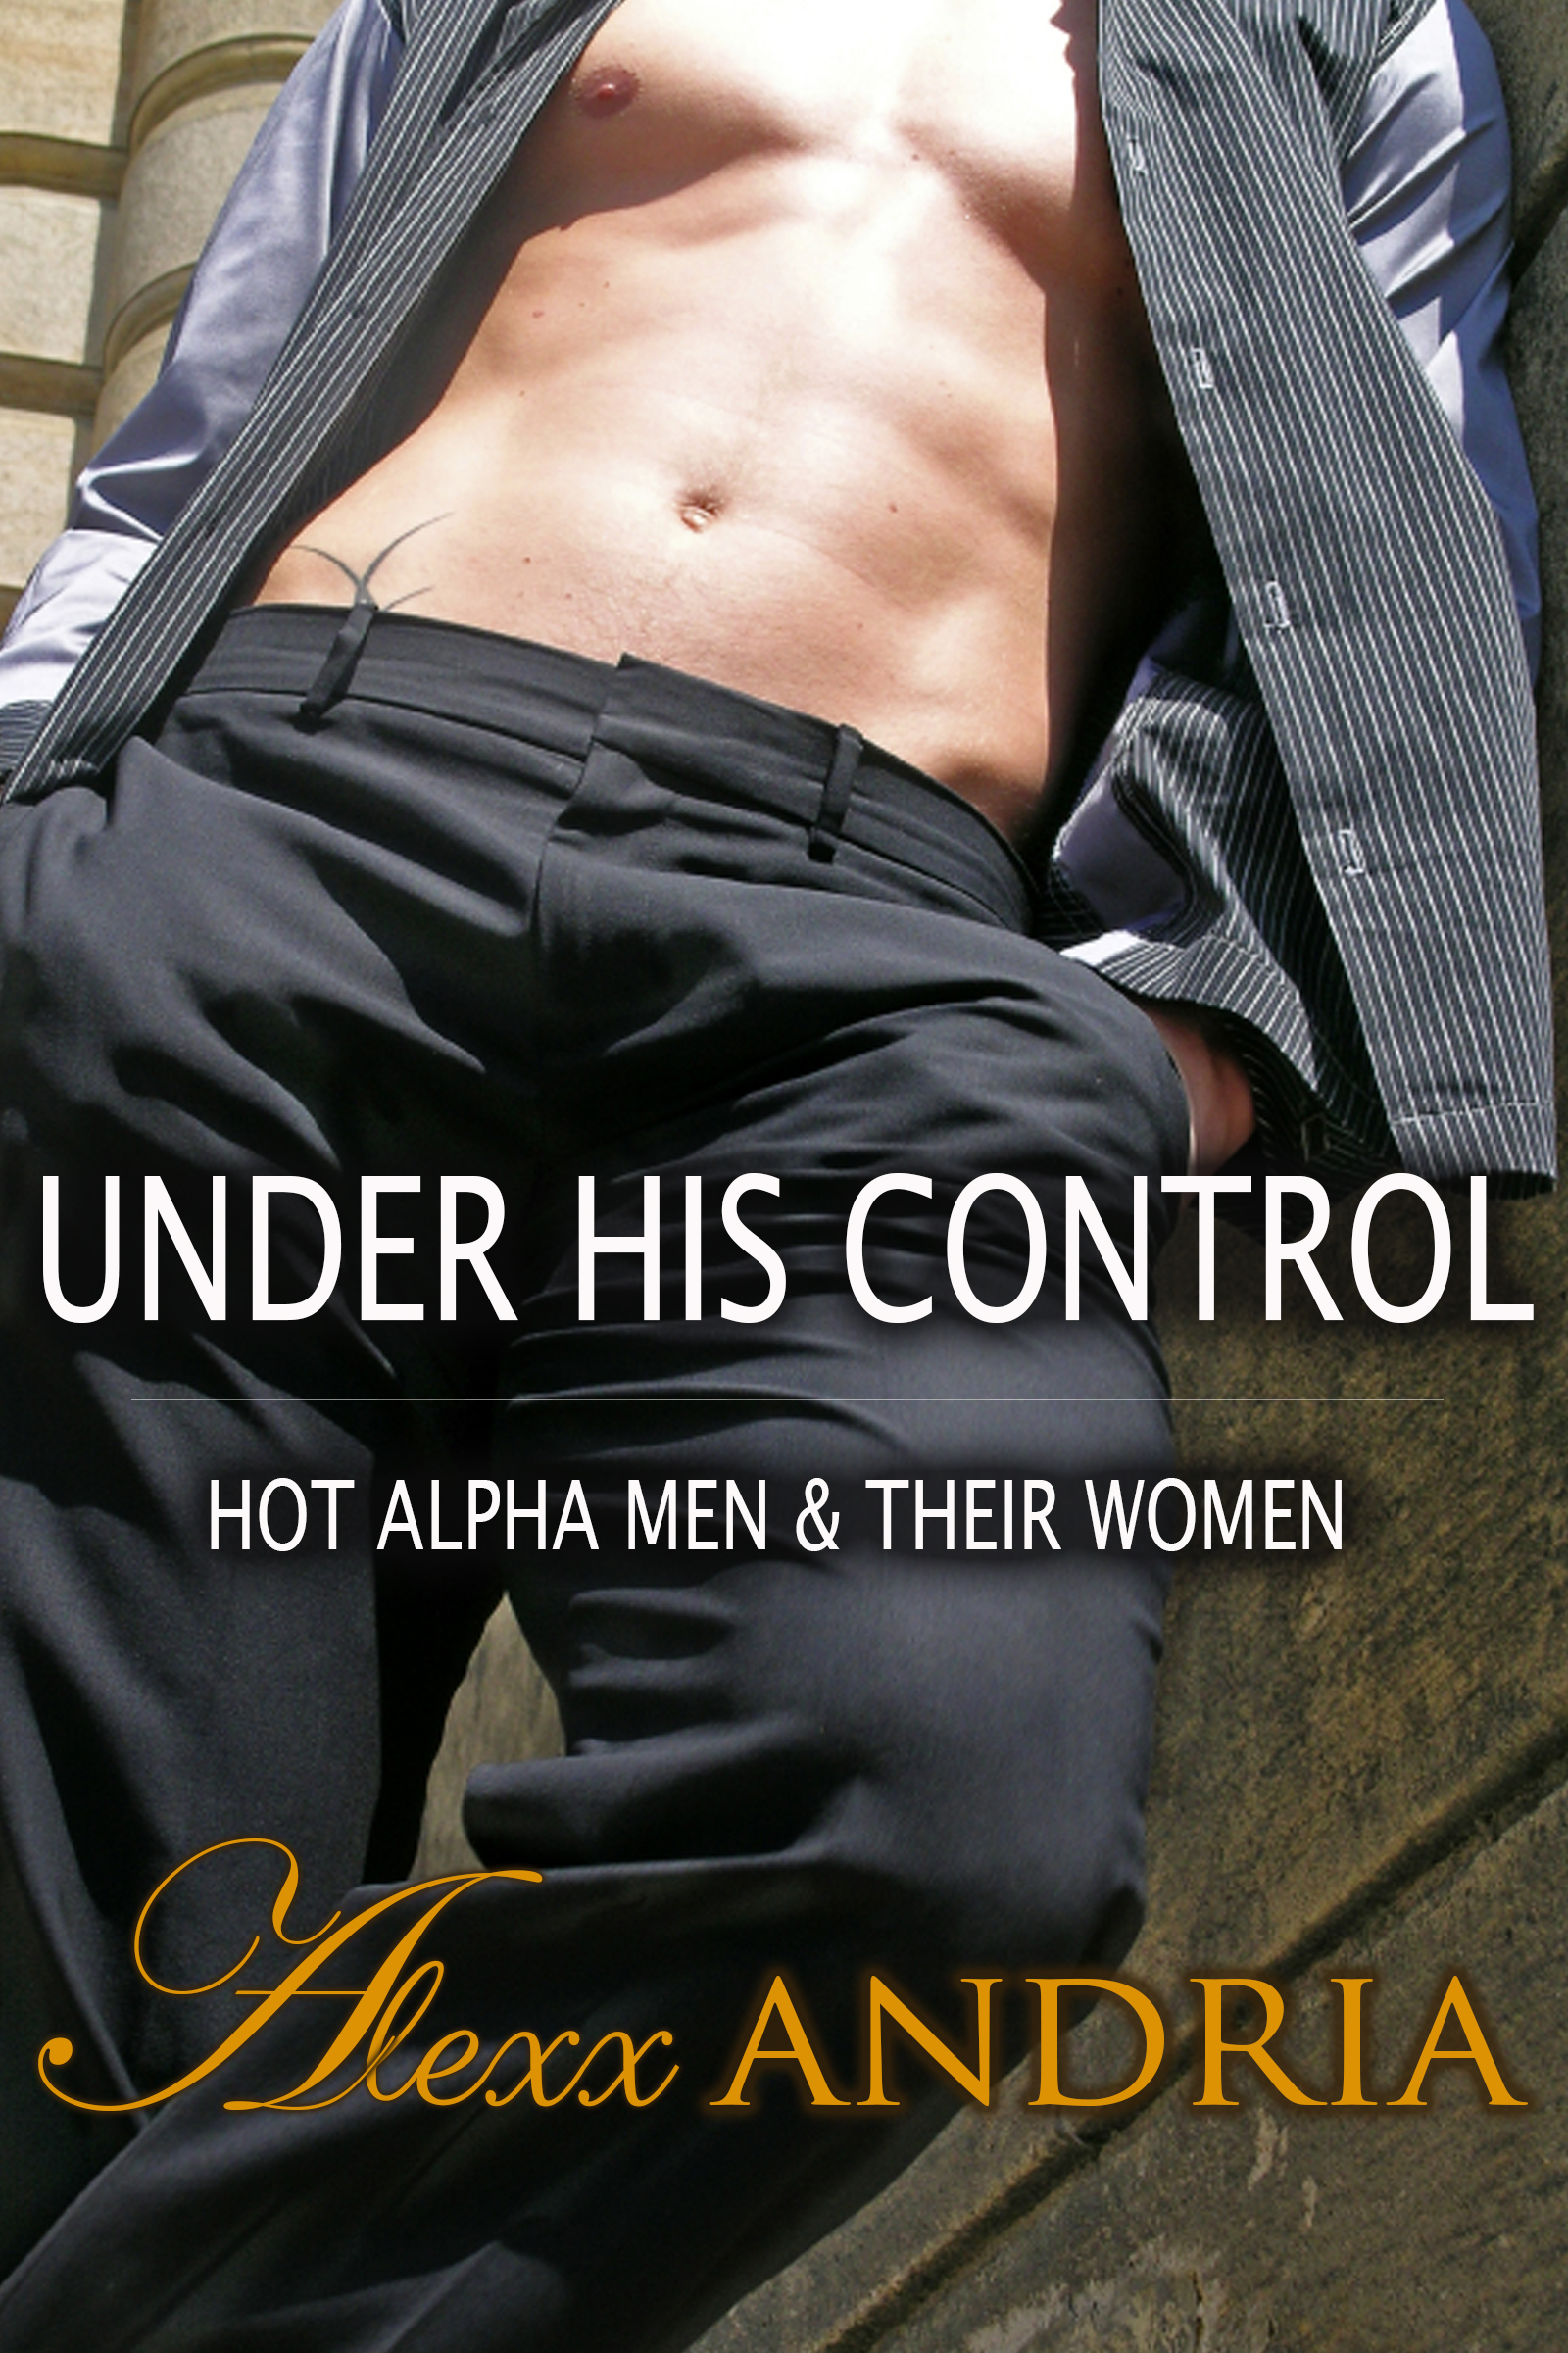 Alexx Andria - Under His Control (3 in 1 bundle)